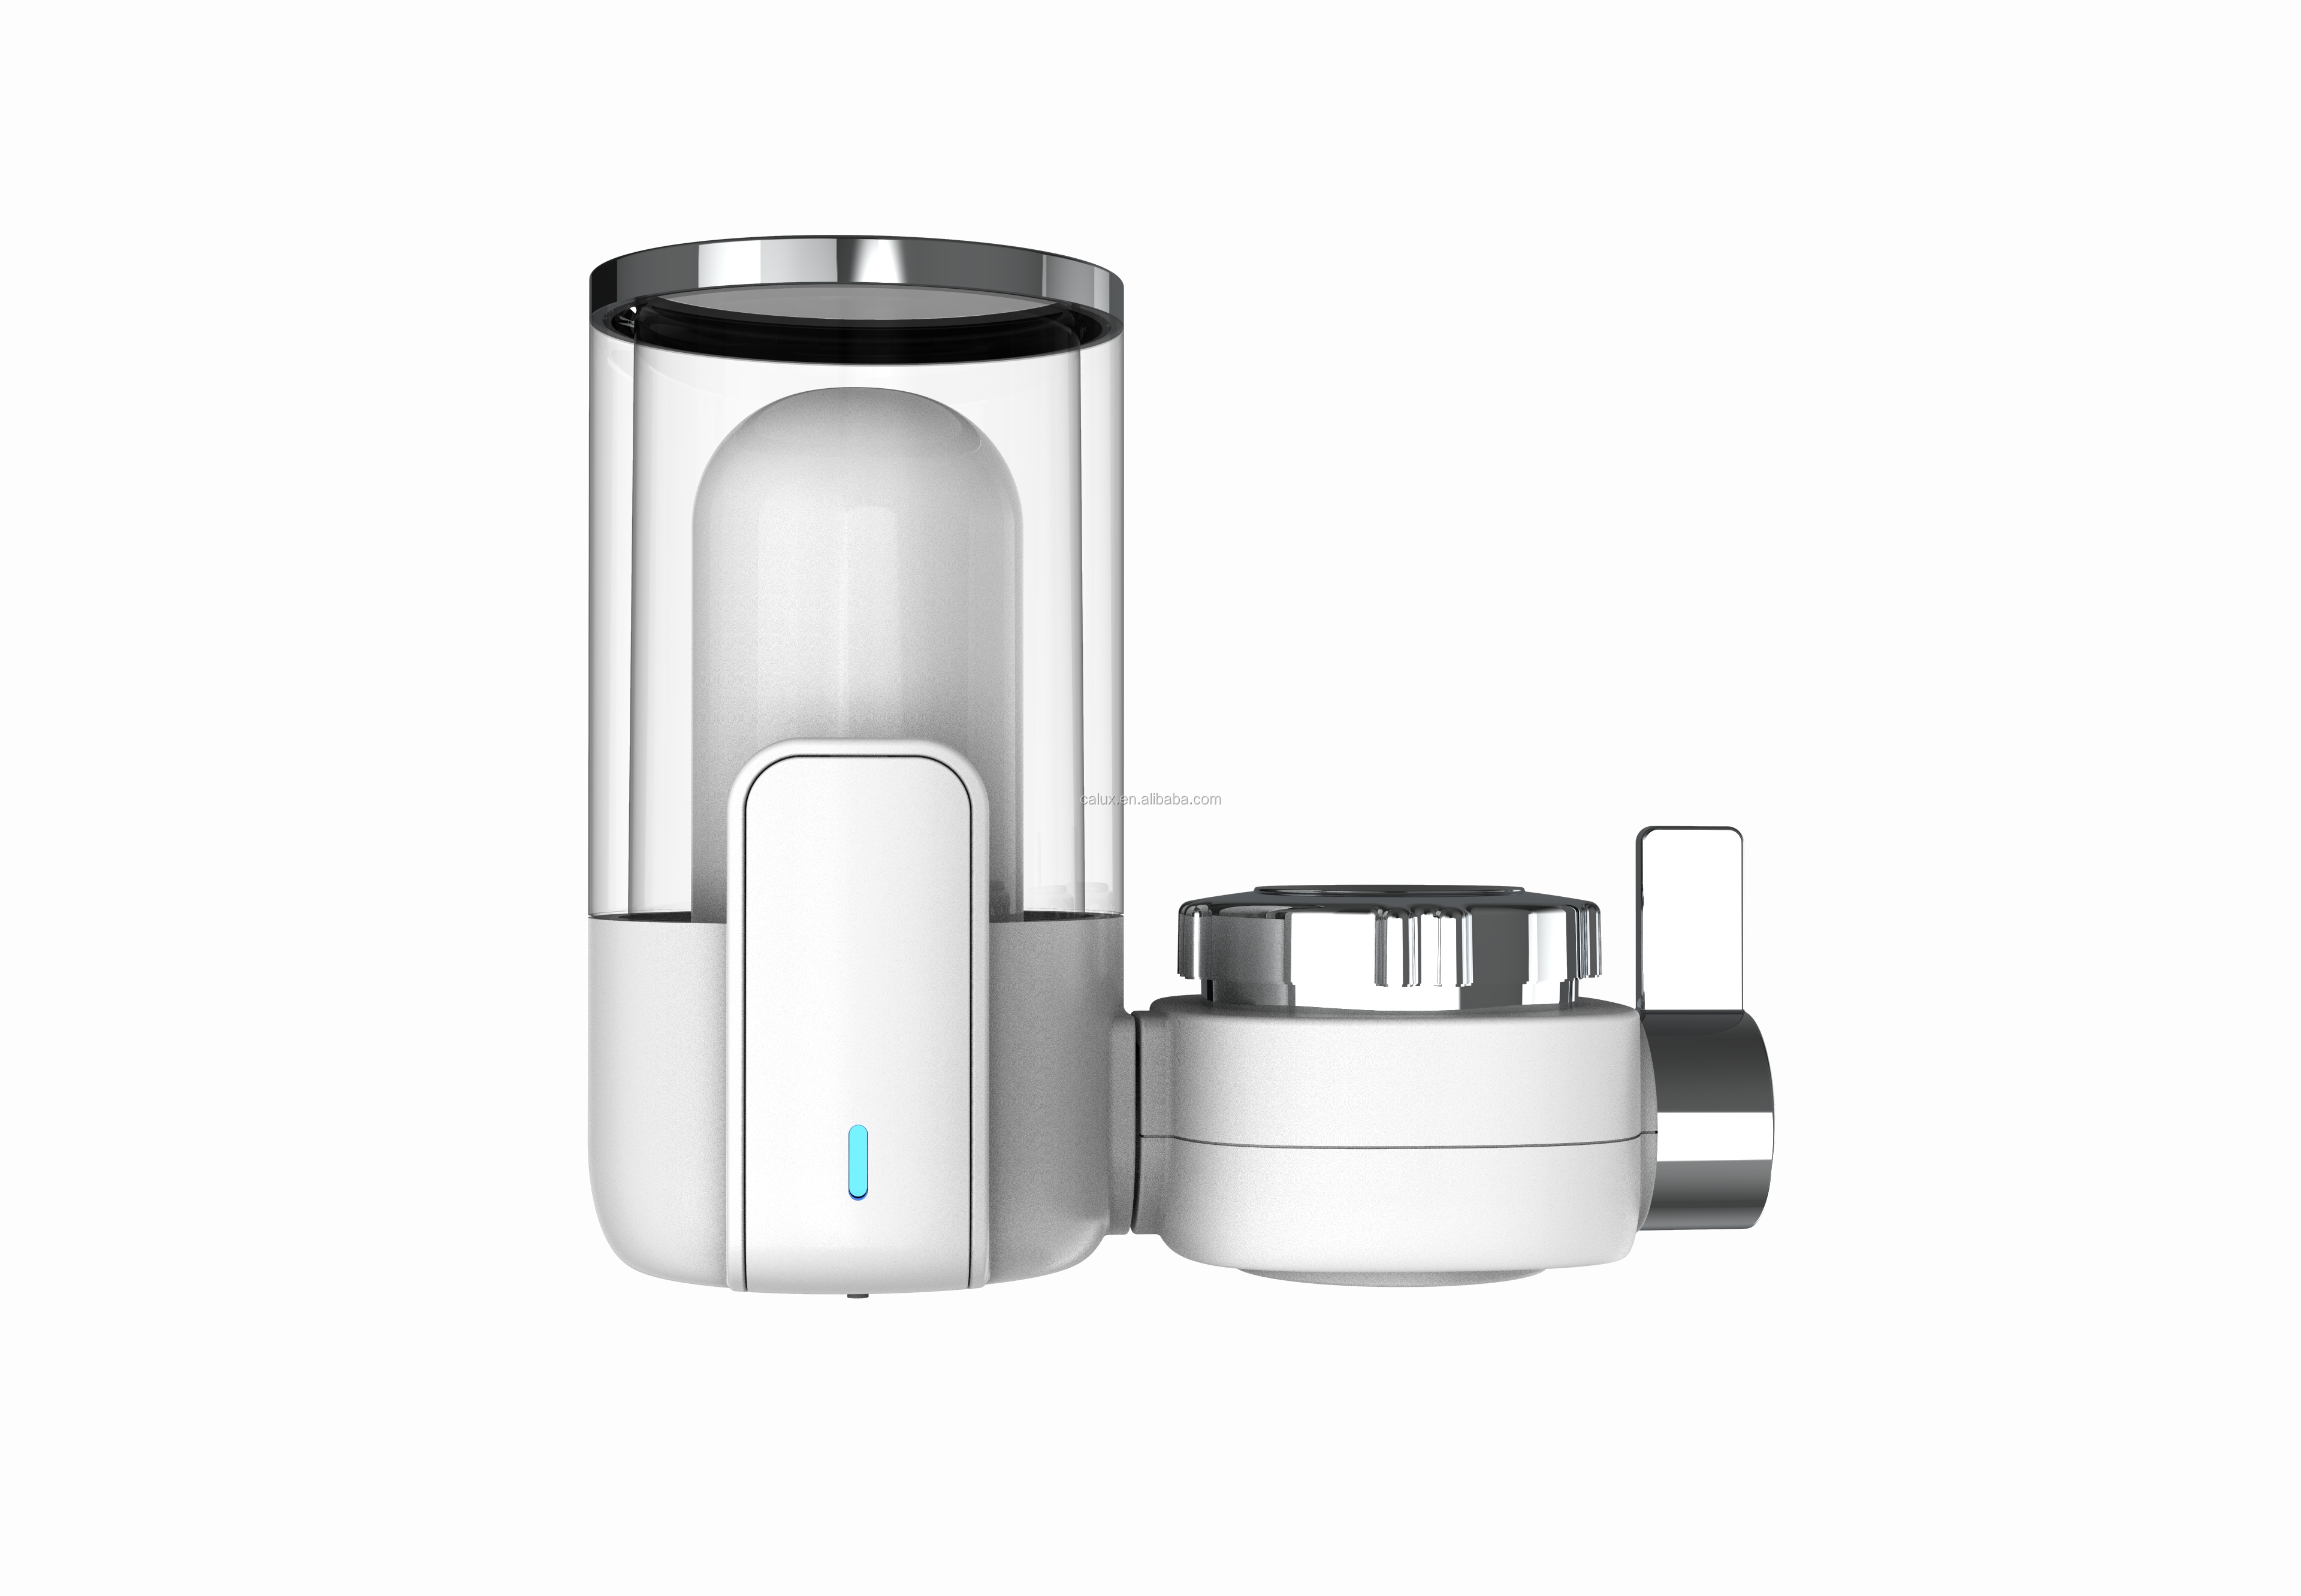 7 Stage Faucet Filter Water Purifier Kitchen And Bathroom Sink Carbon Filter Lasts 3 Months Transparent Faucet Water Filter Buy Faucet Water Filter Carbon Filter Transparent Faucet Water Filter Faucet Filter Water Purifier Product On